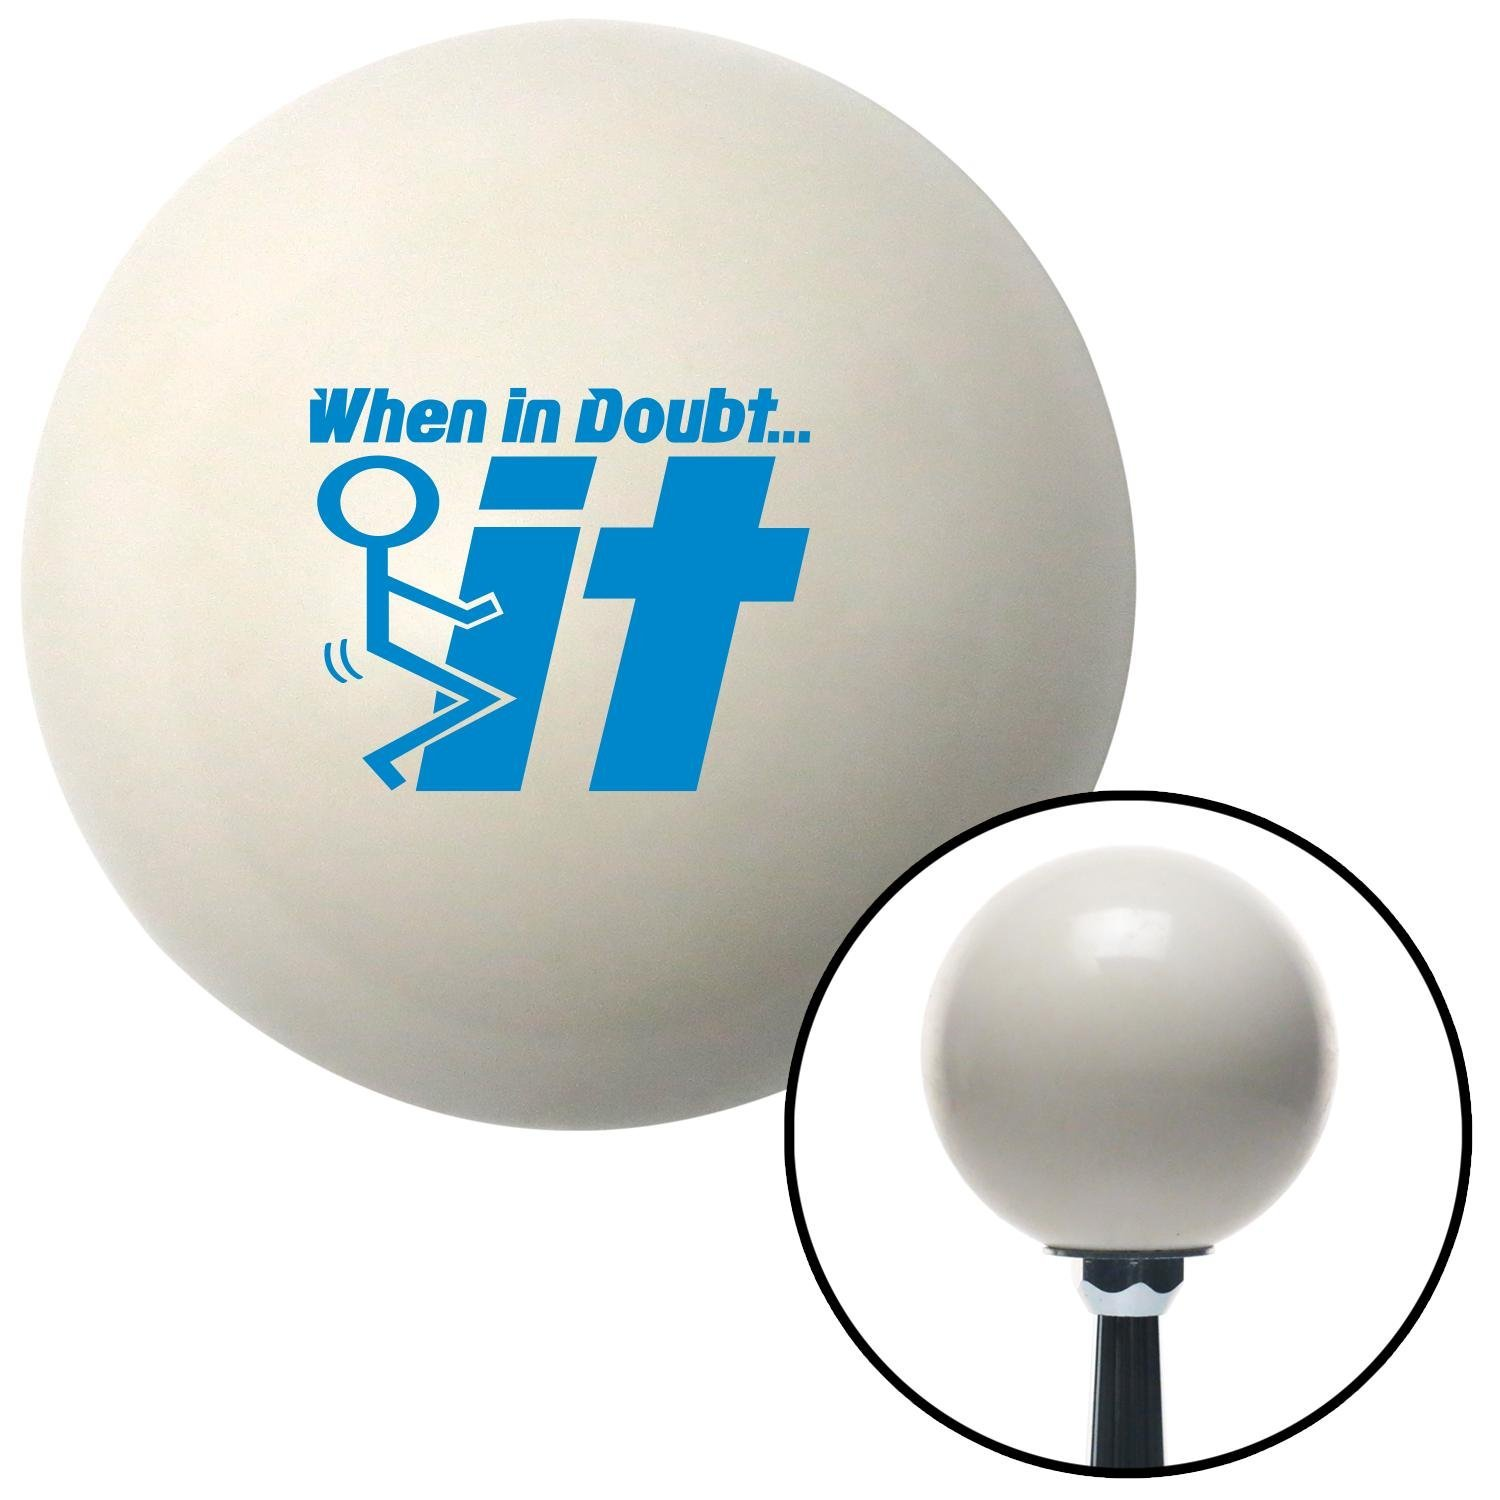 American Shifter 77339 Ivory Shift Knob with M16 x 1.5 Insert Blue When in Doubt